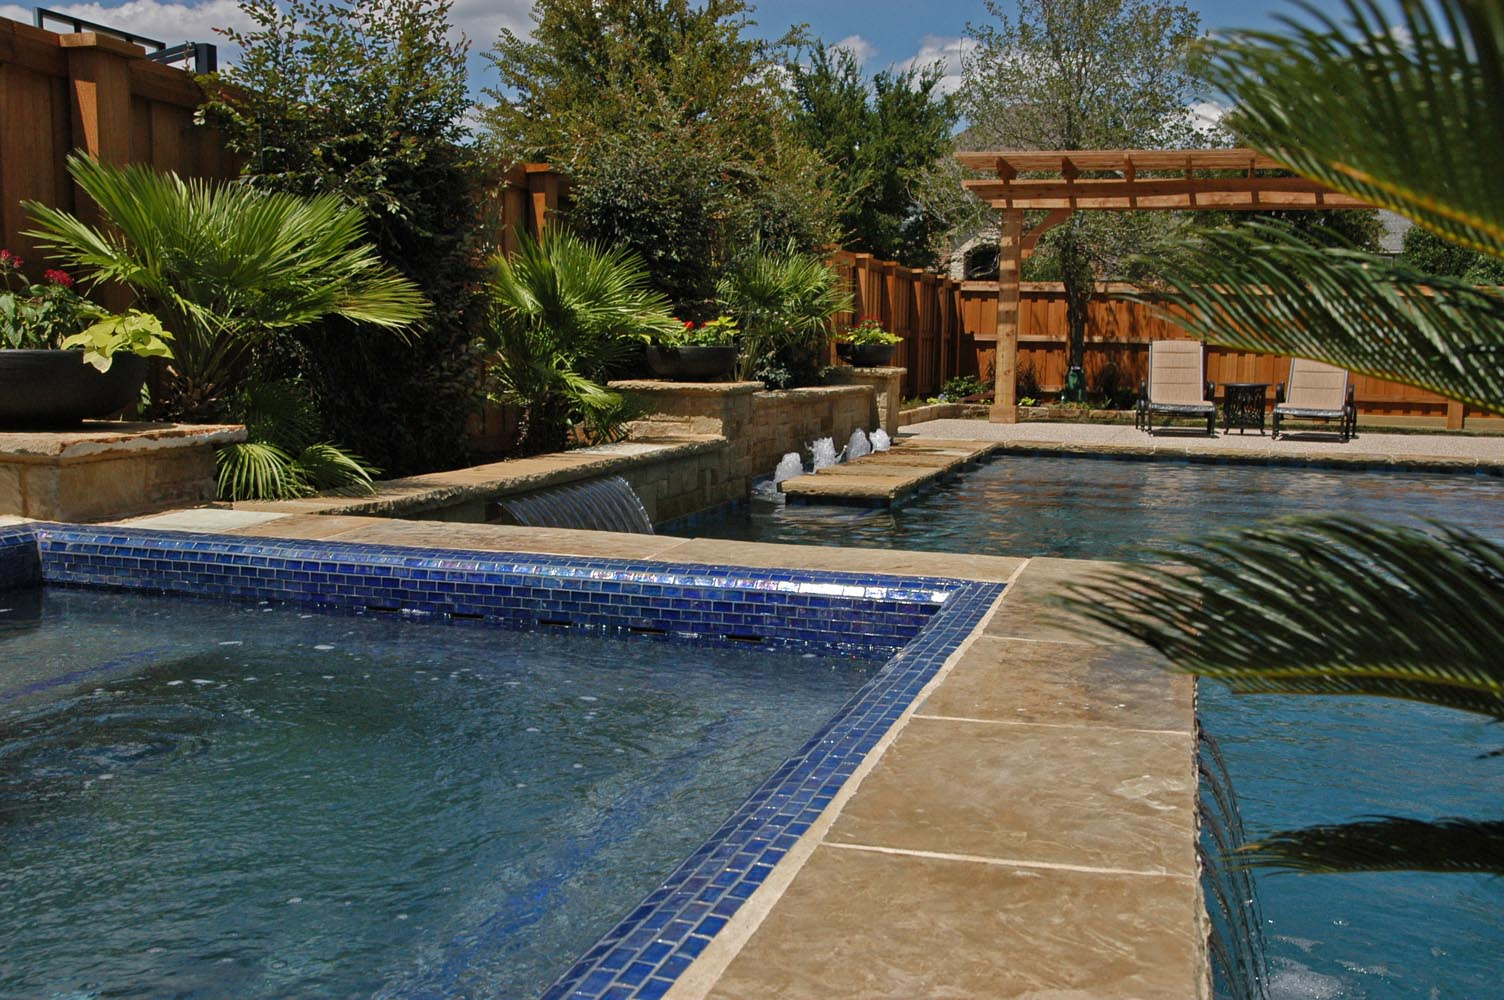 Dallas, Plano Pool Fountains, Custom Water Features Gallery